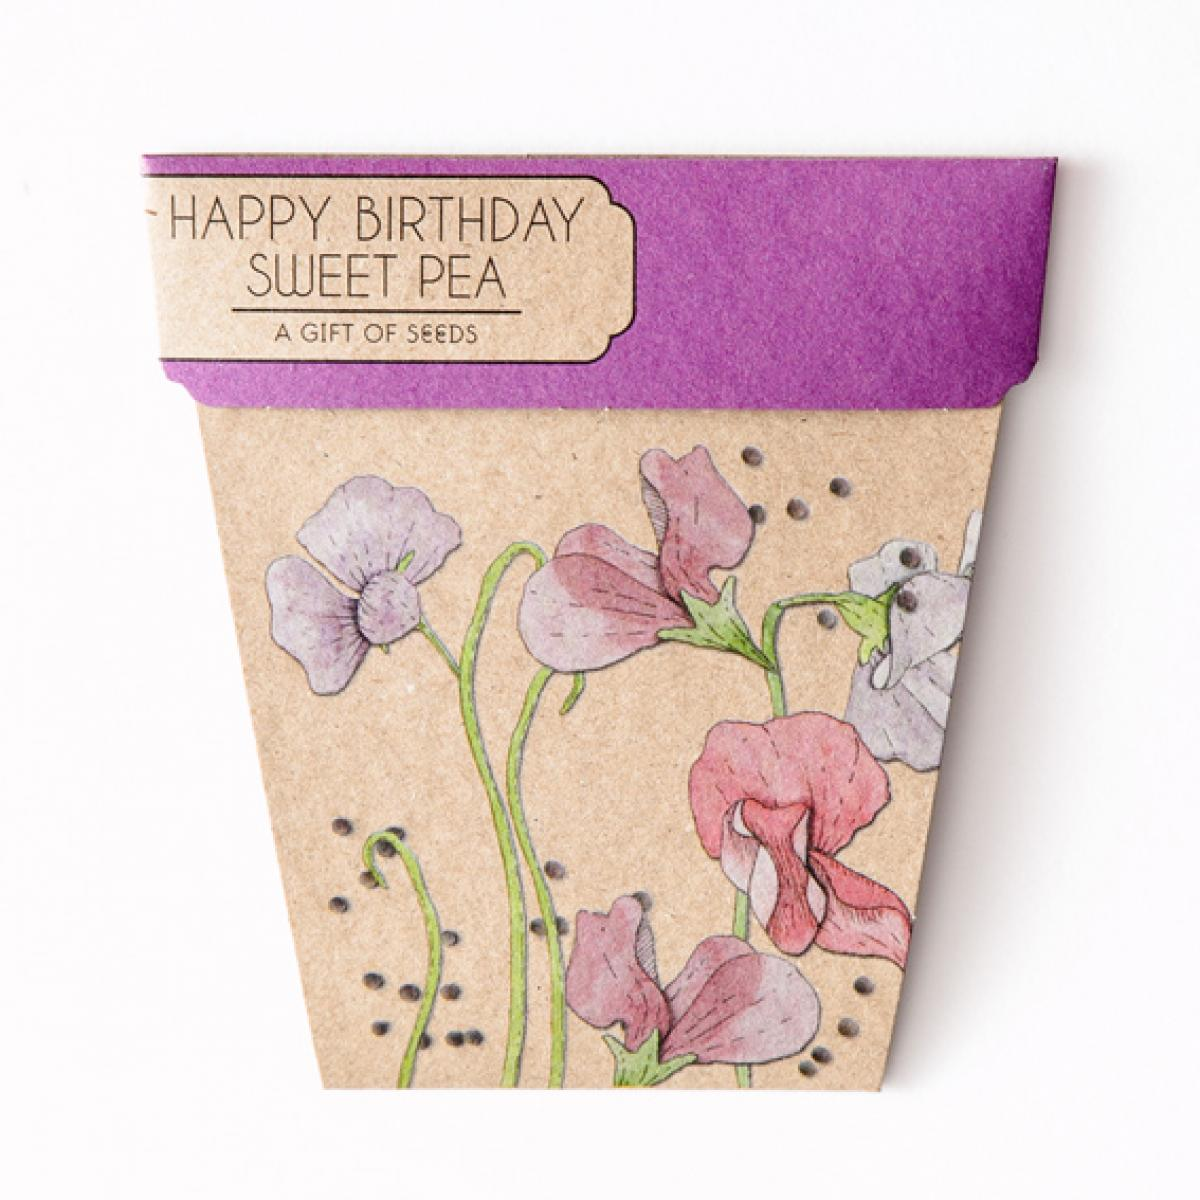 Sow 'n Sow Gift Card with Seeds - Sweet Pea - Gift of Seeds - Throw Some Seeds - Australian gardening gifts and eco products online!